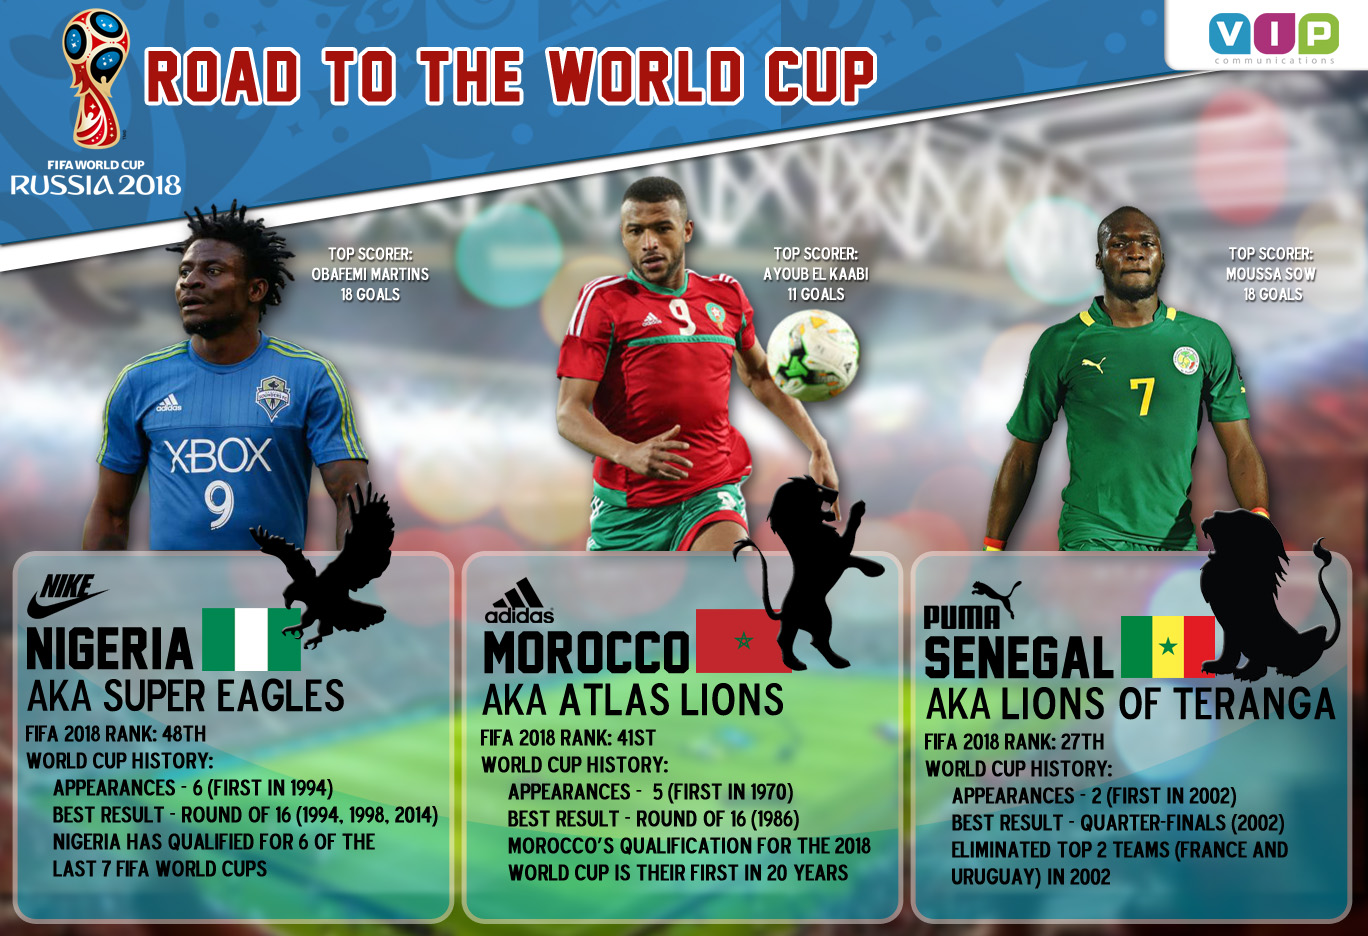 Road to World Cup Infographic